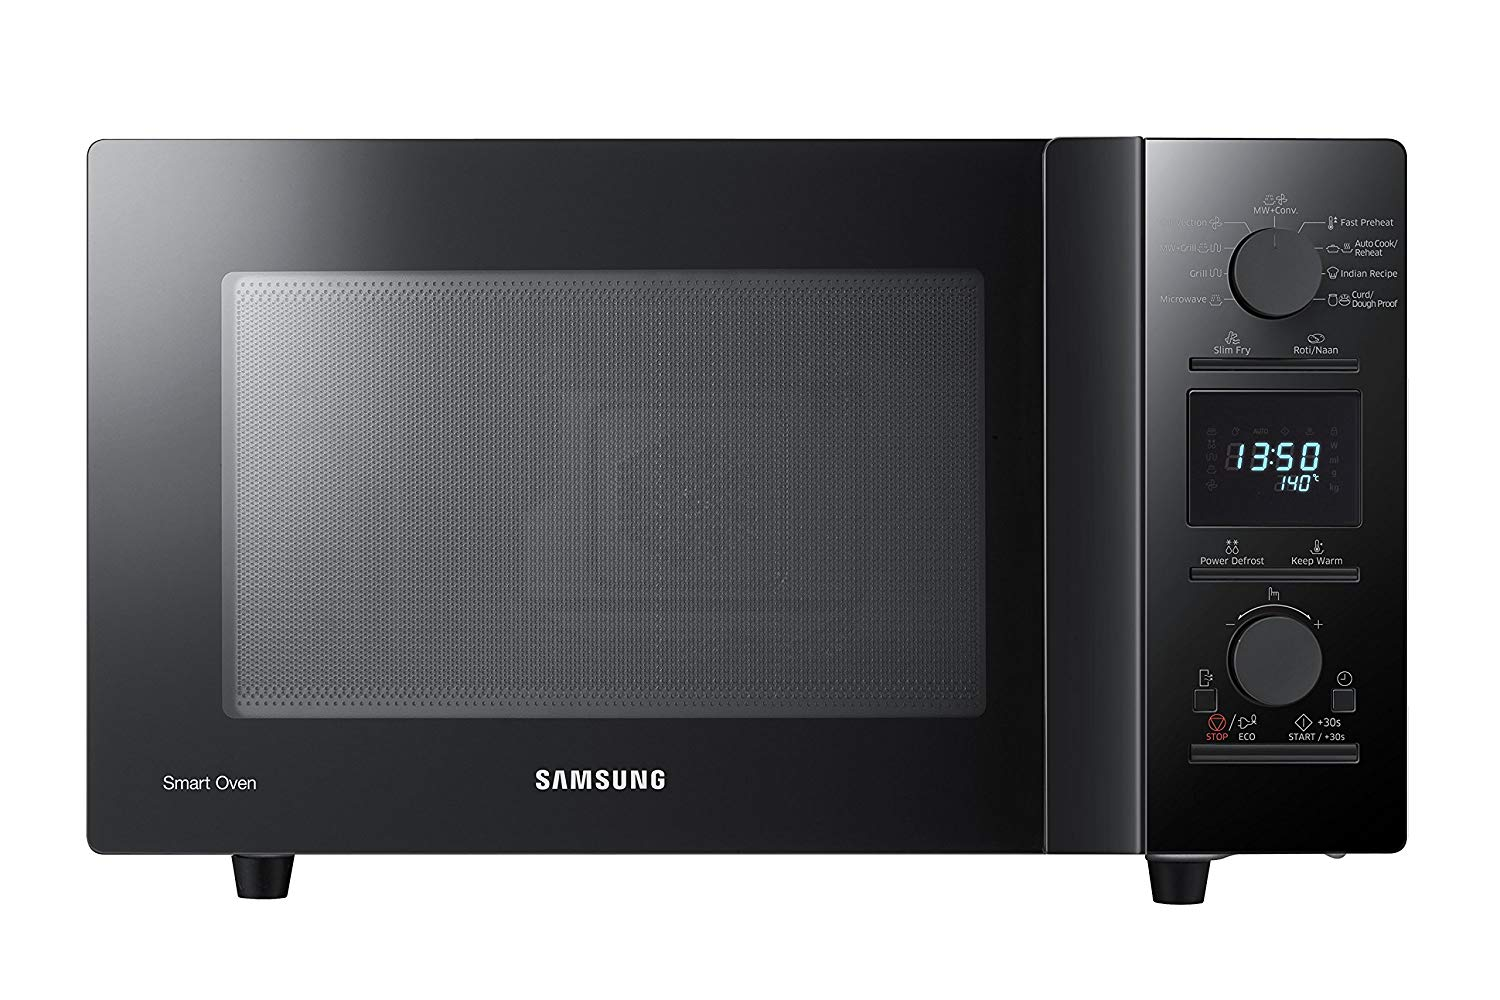 Samsung 32 L Convection Microwave Oven (XTL, Black)